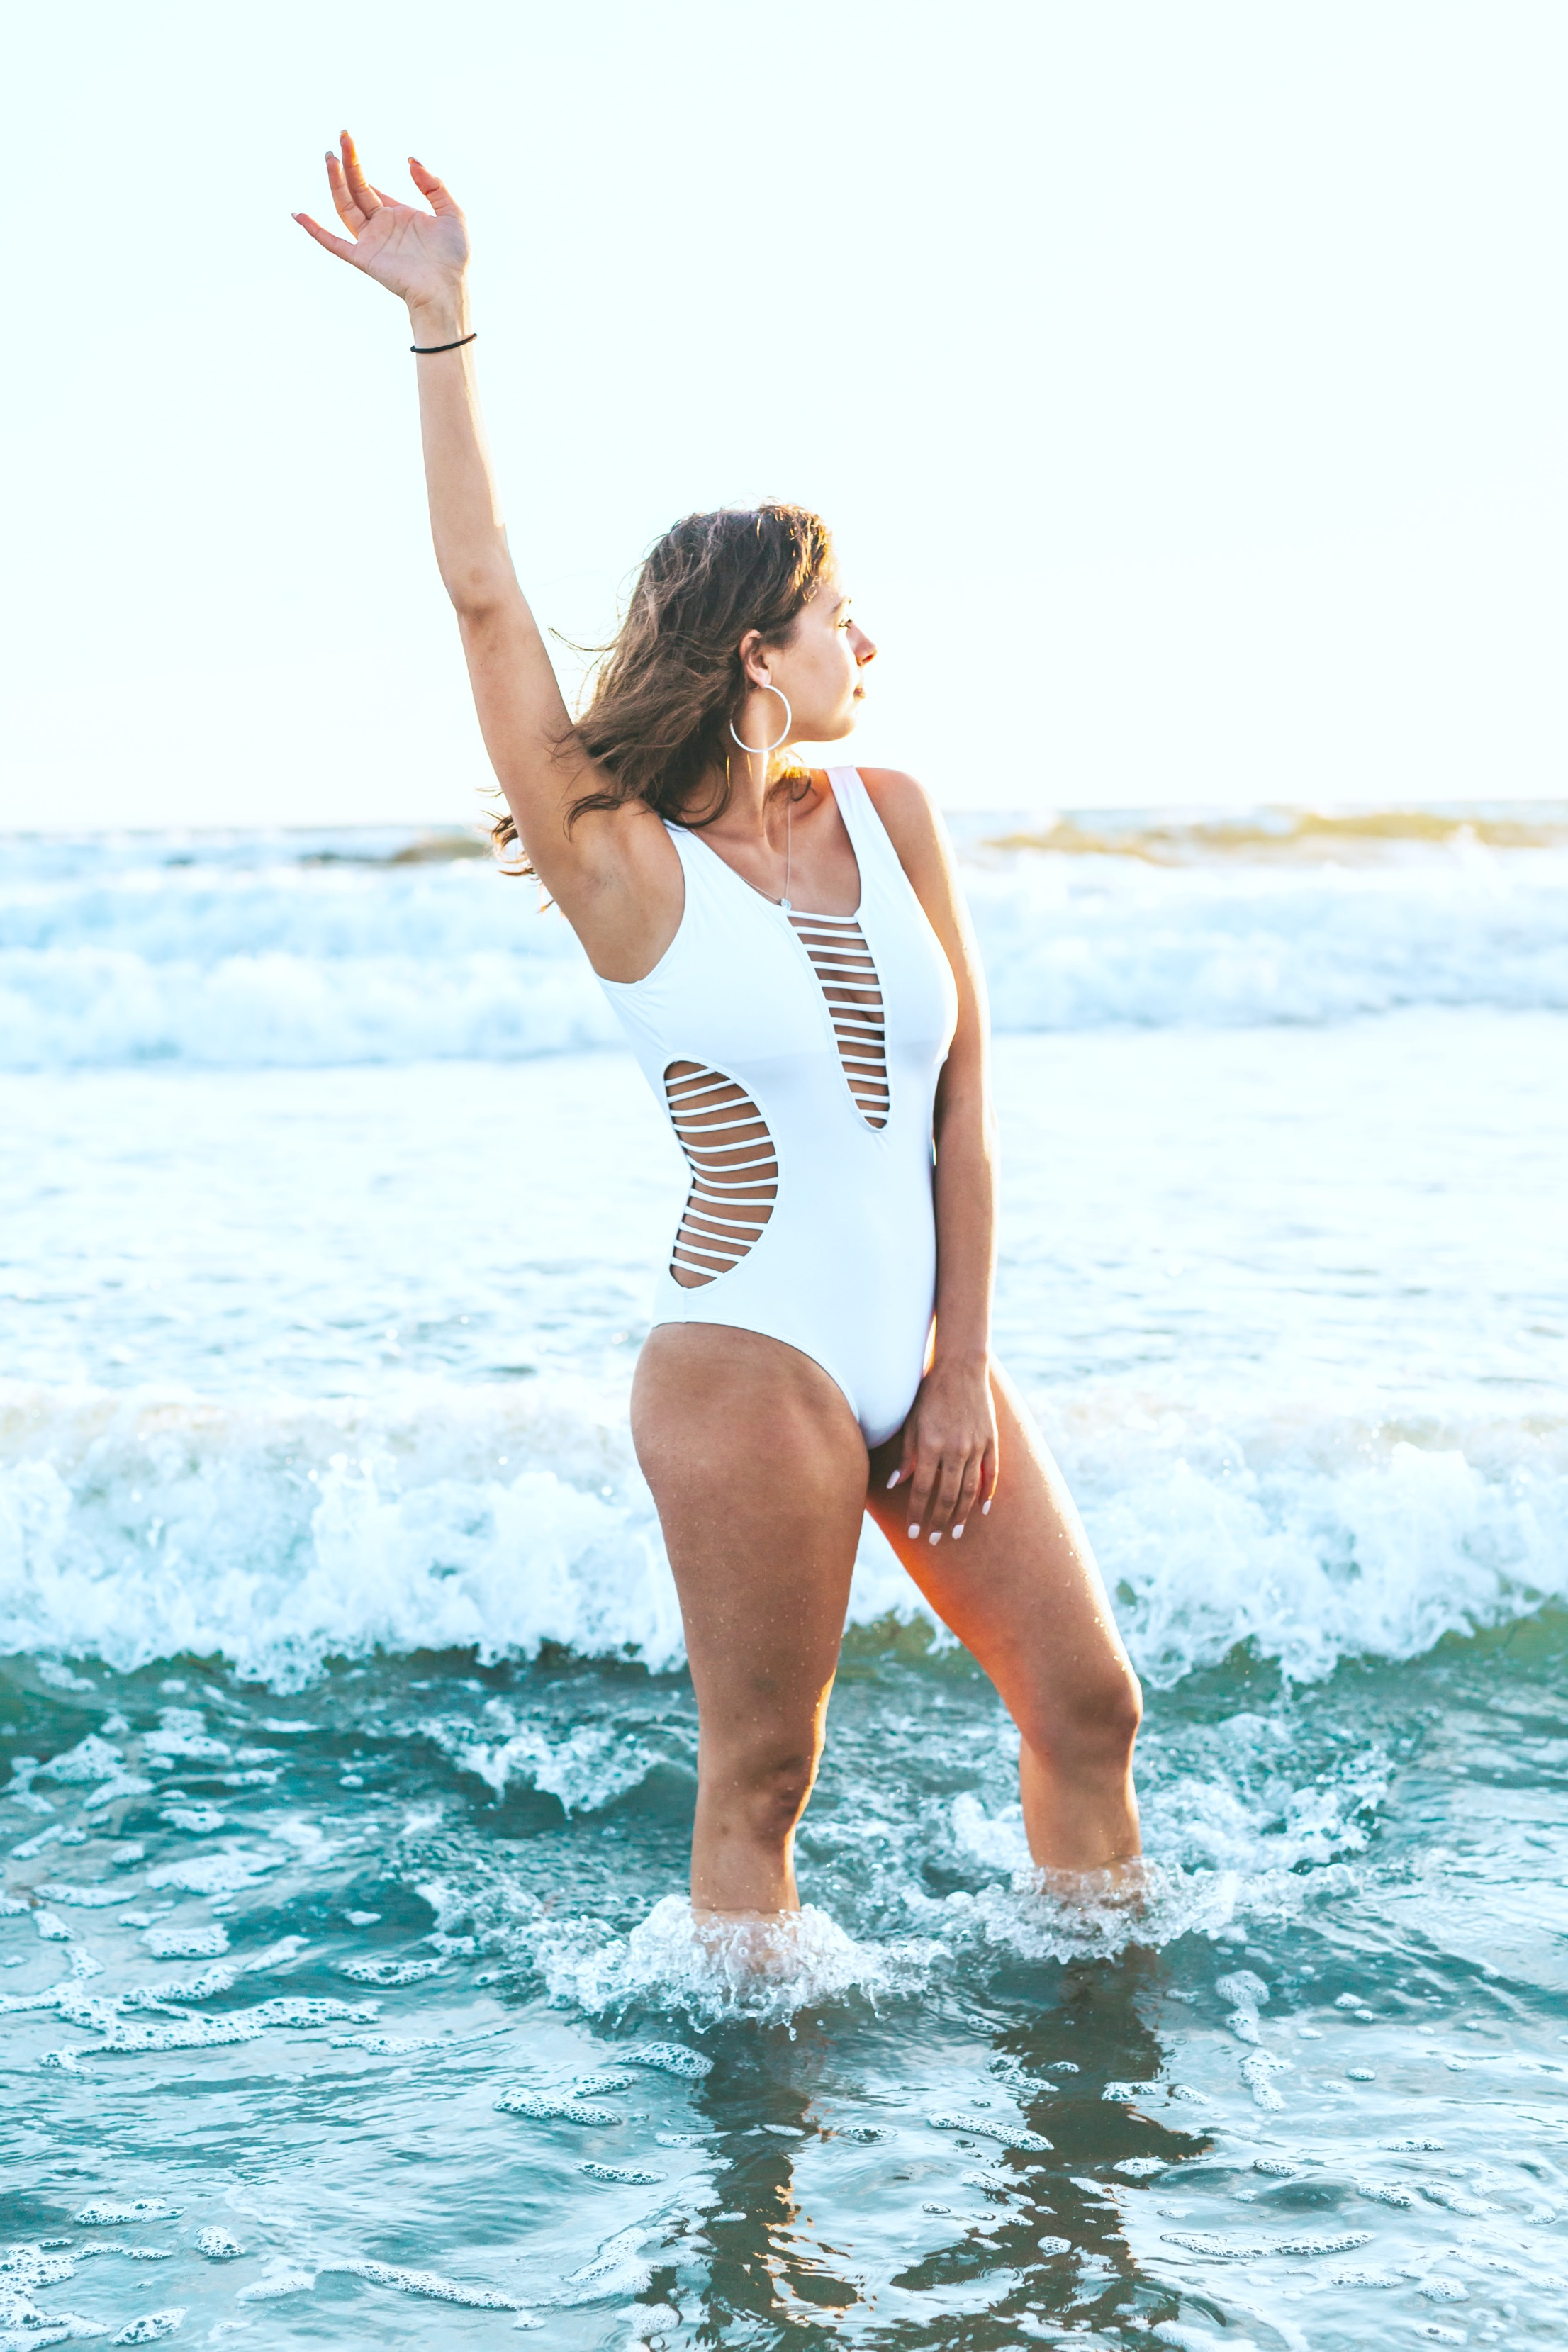 Confident woman in a one piece bathing suit in the ocean, throwing her hand in the air and looking towards the horizon.